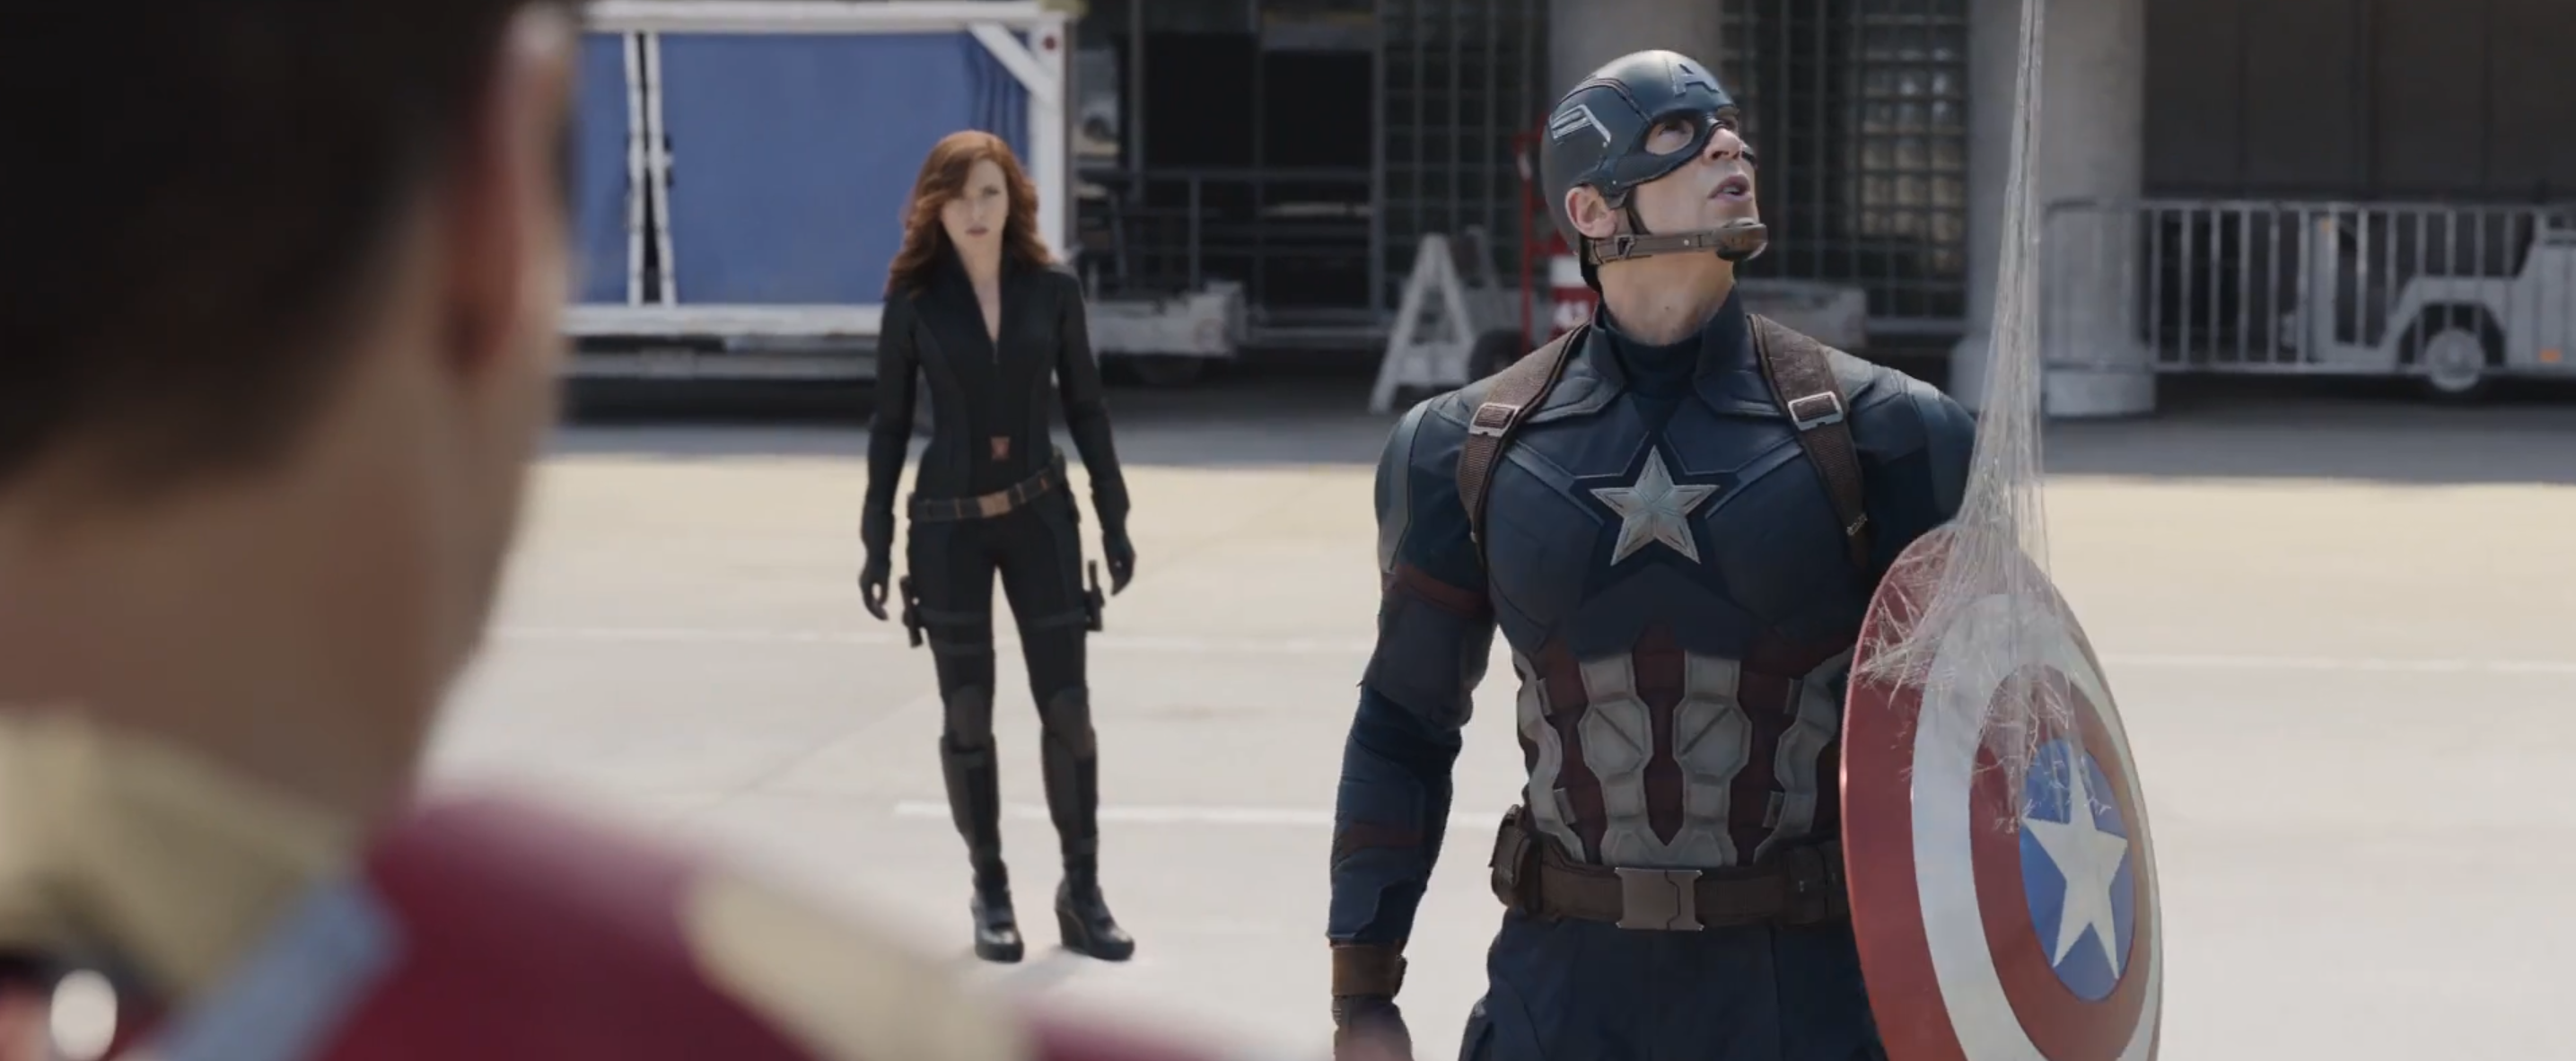 Captain America: Civil War: lo scudo di Cap nella tela di Spider-Man nel trailer 2 del film